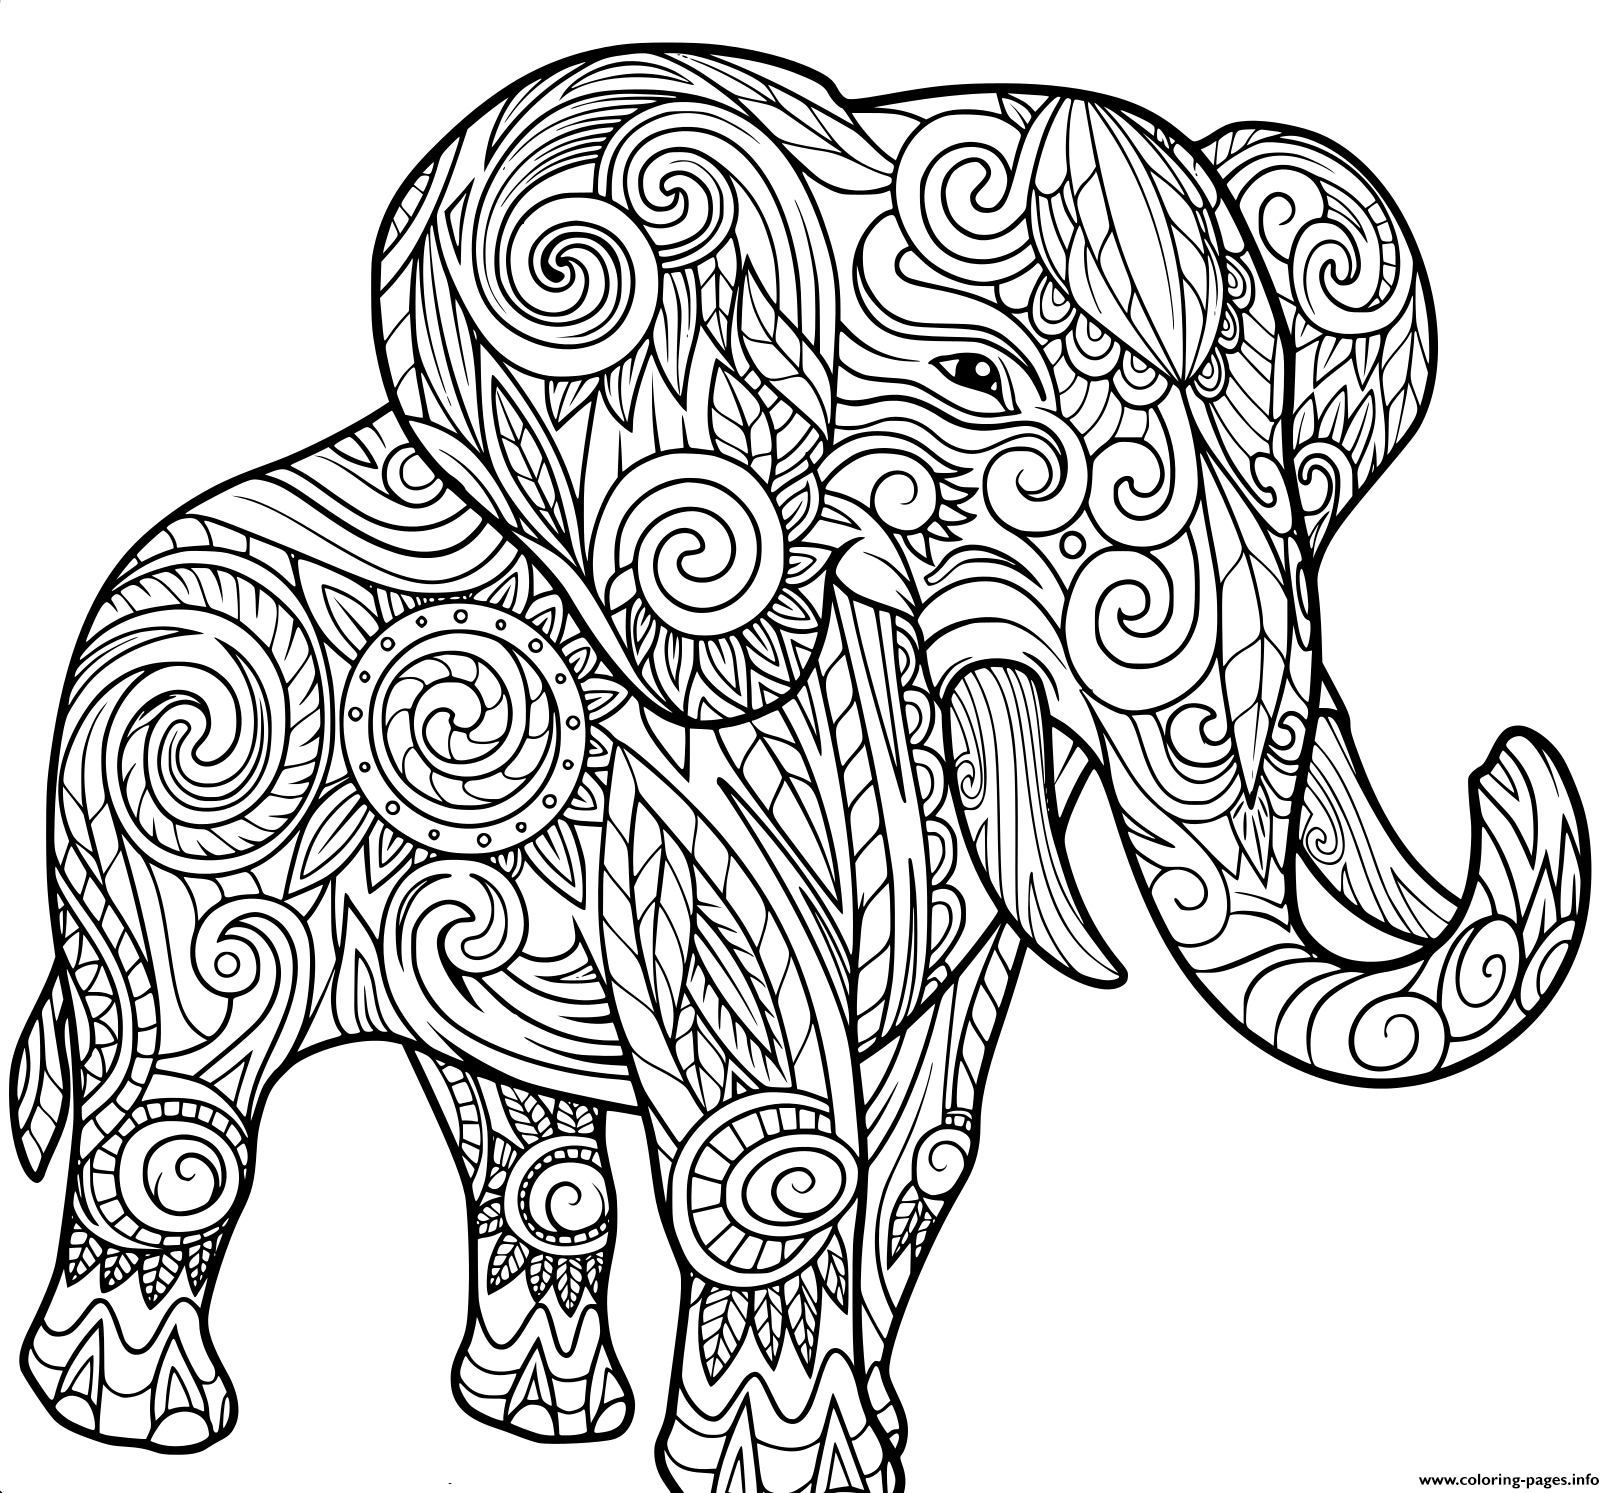 Free Animal Coloring Pages For Adults Sheet Unicorn Kids Sports To Print Approachingtheelephant Coloring Home